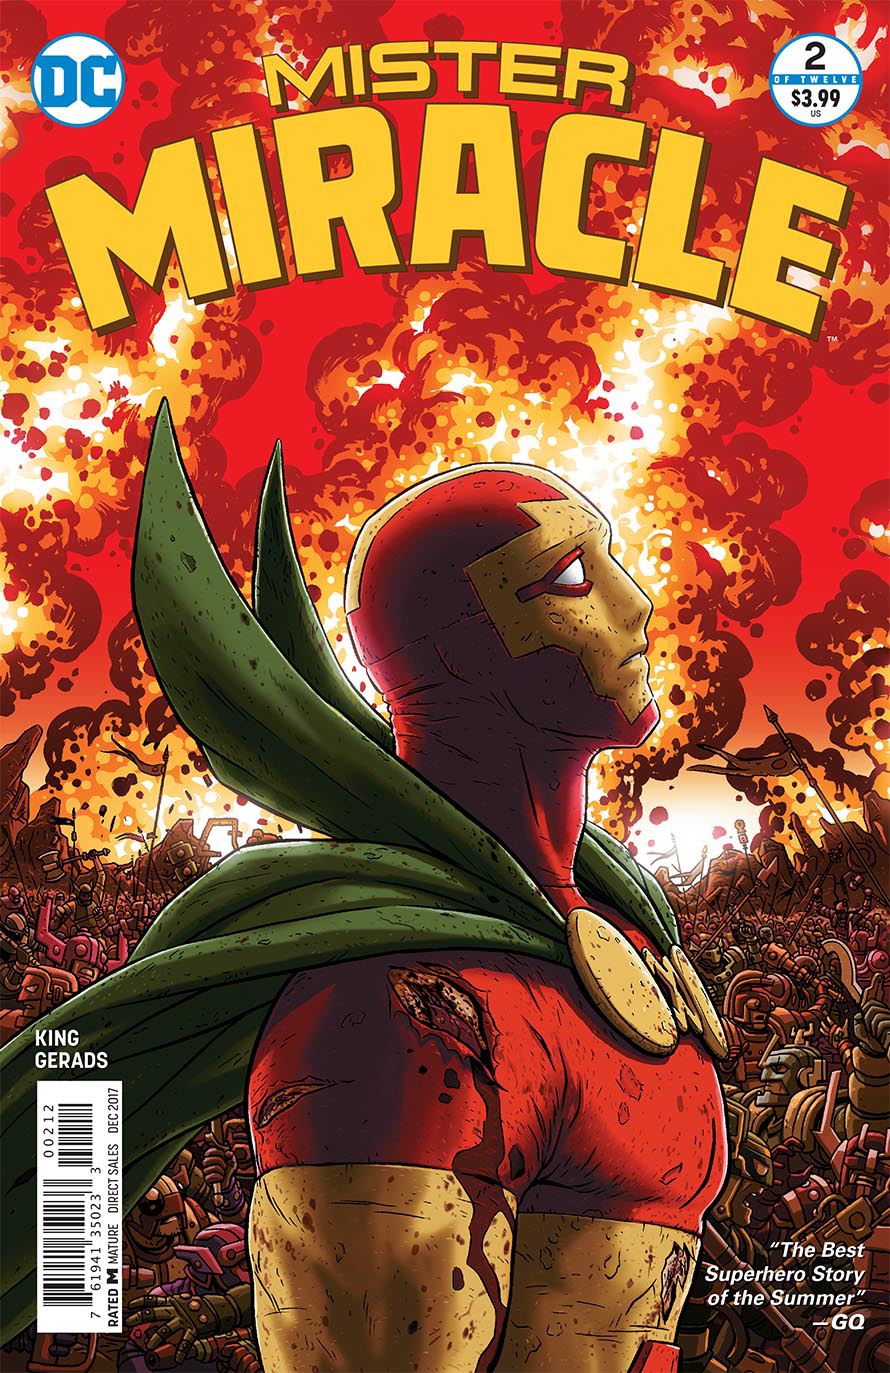 MISTER MIRACLE #2 (OF 12) 2ND PTG (MR)